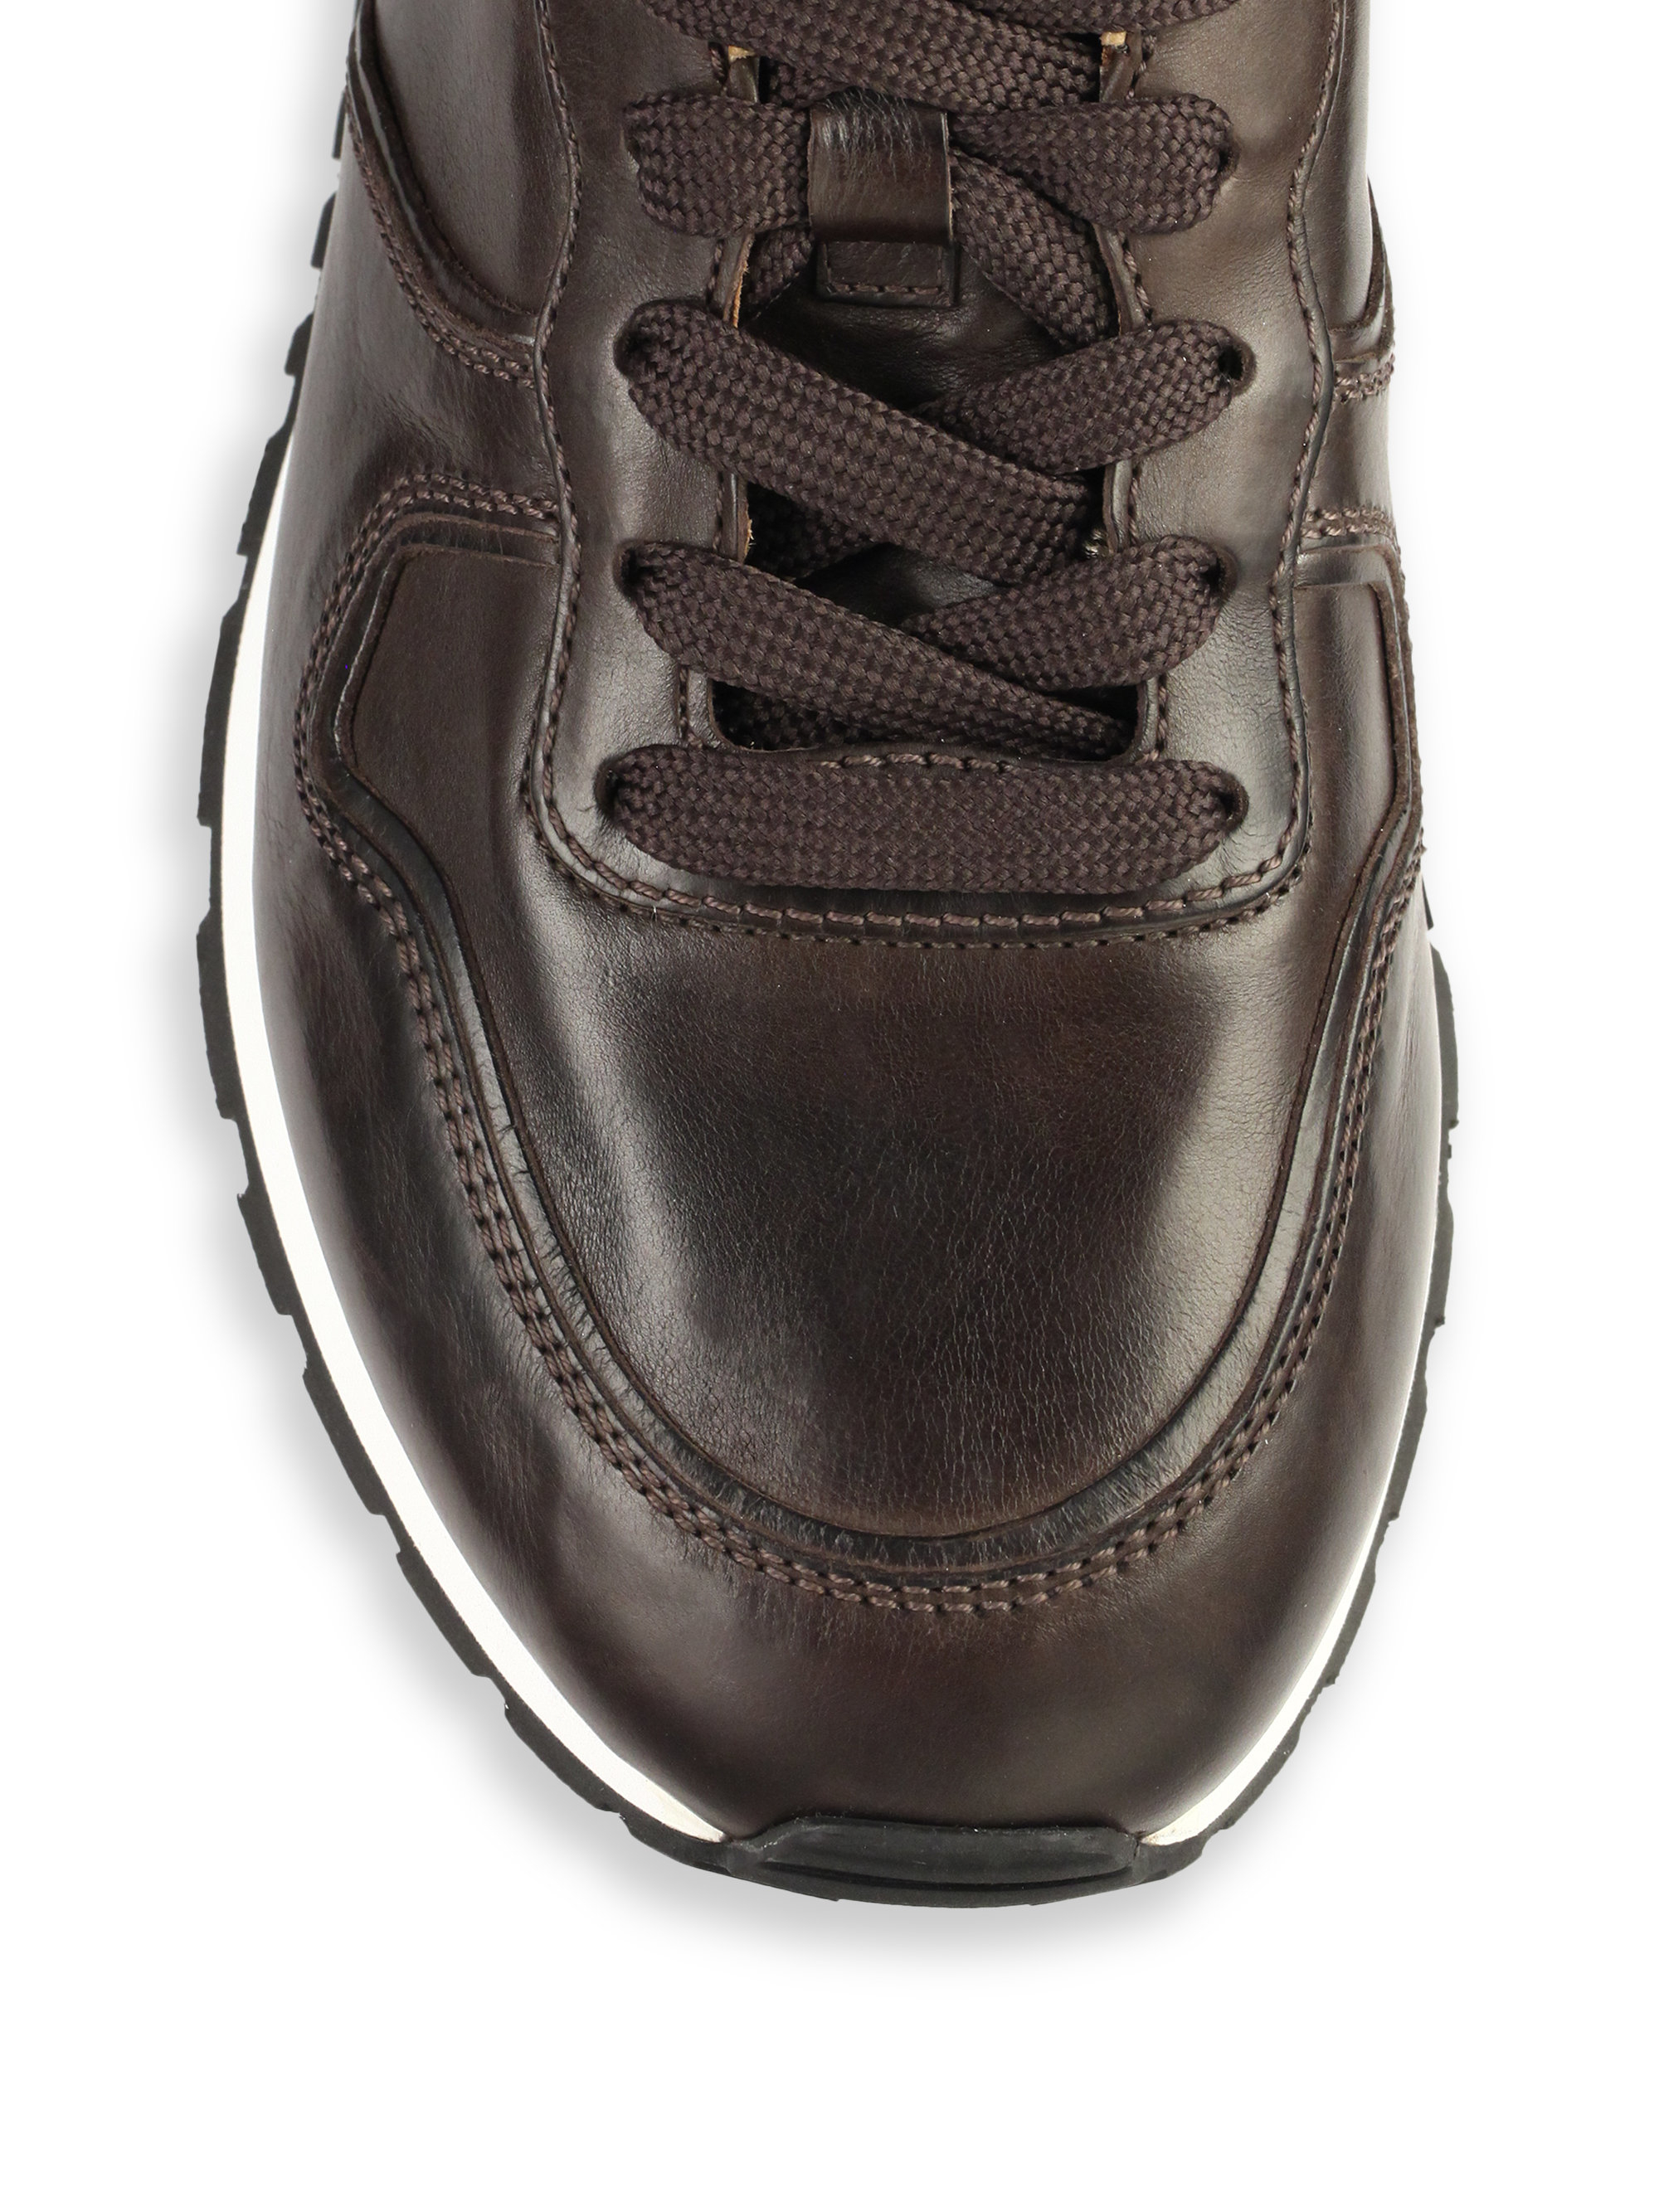 dbe6beb688 Tod's Leather Sneakers in Brown for Men - Lyst